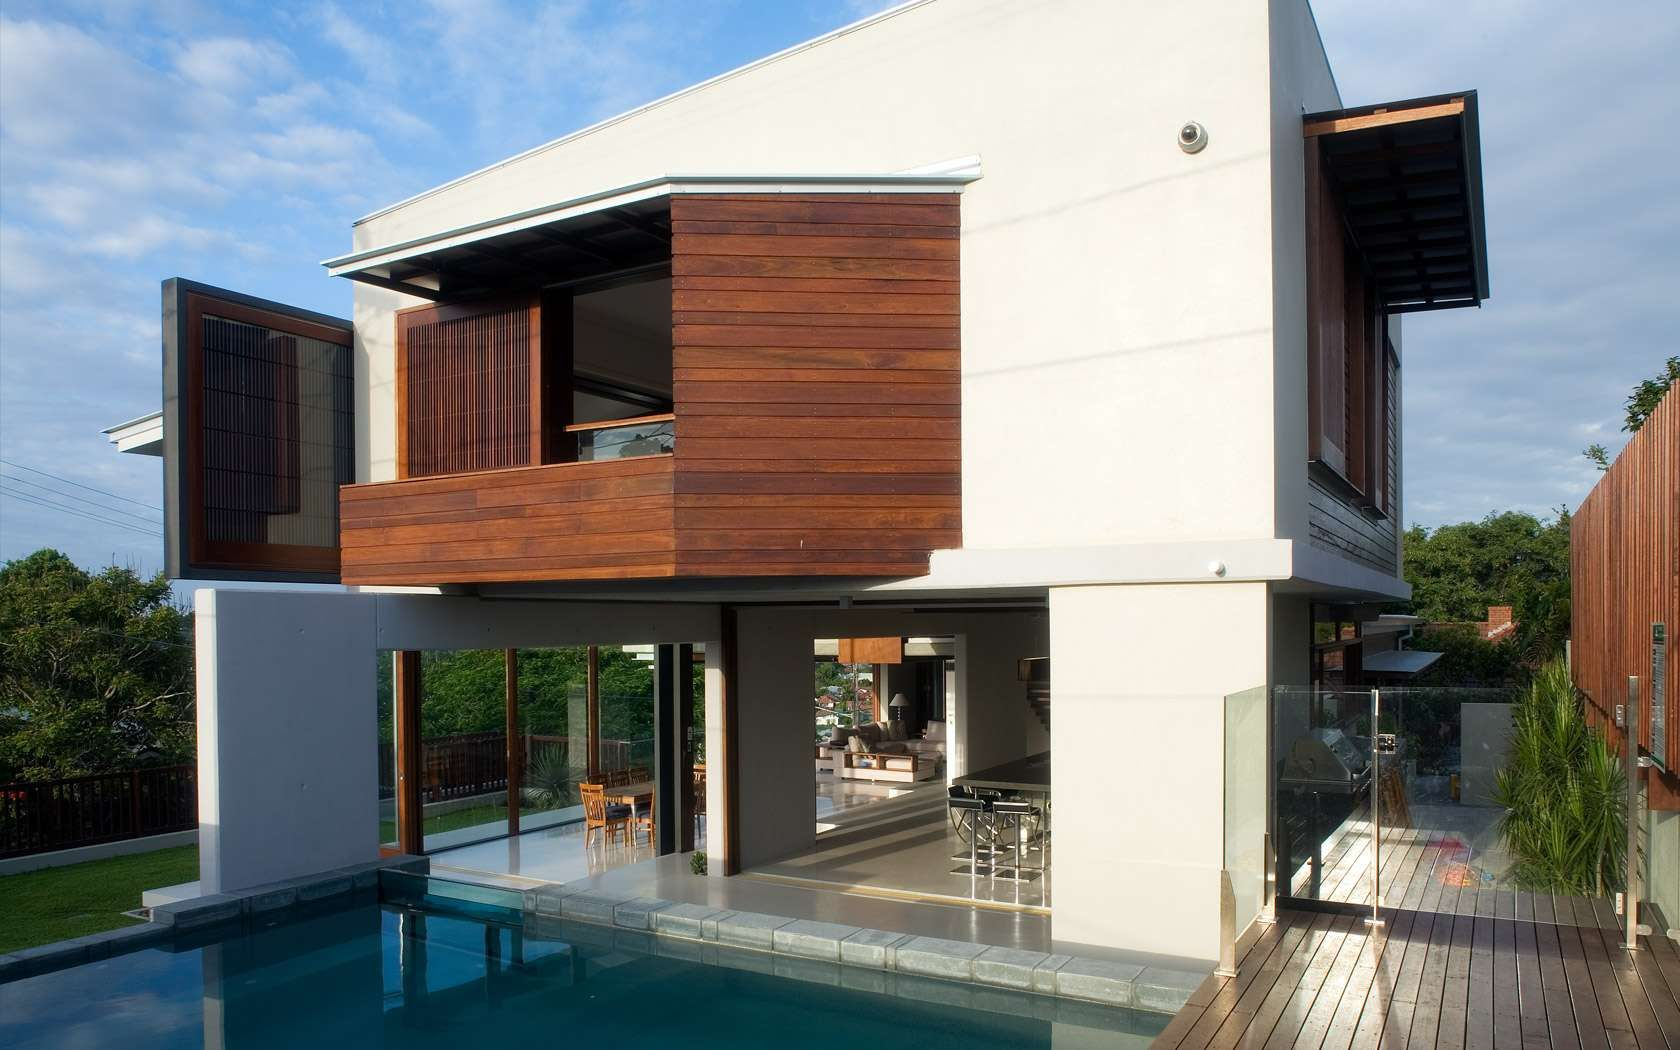 Queensland australia 7 modern home design ideas lakbermagazin - Patane Residence The Three Story Modern Family Home In Newmarket Queensland Australia Designed By Bureau Proberts